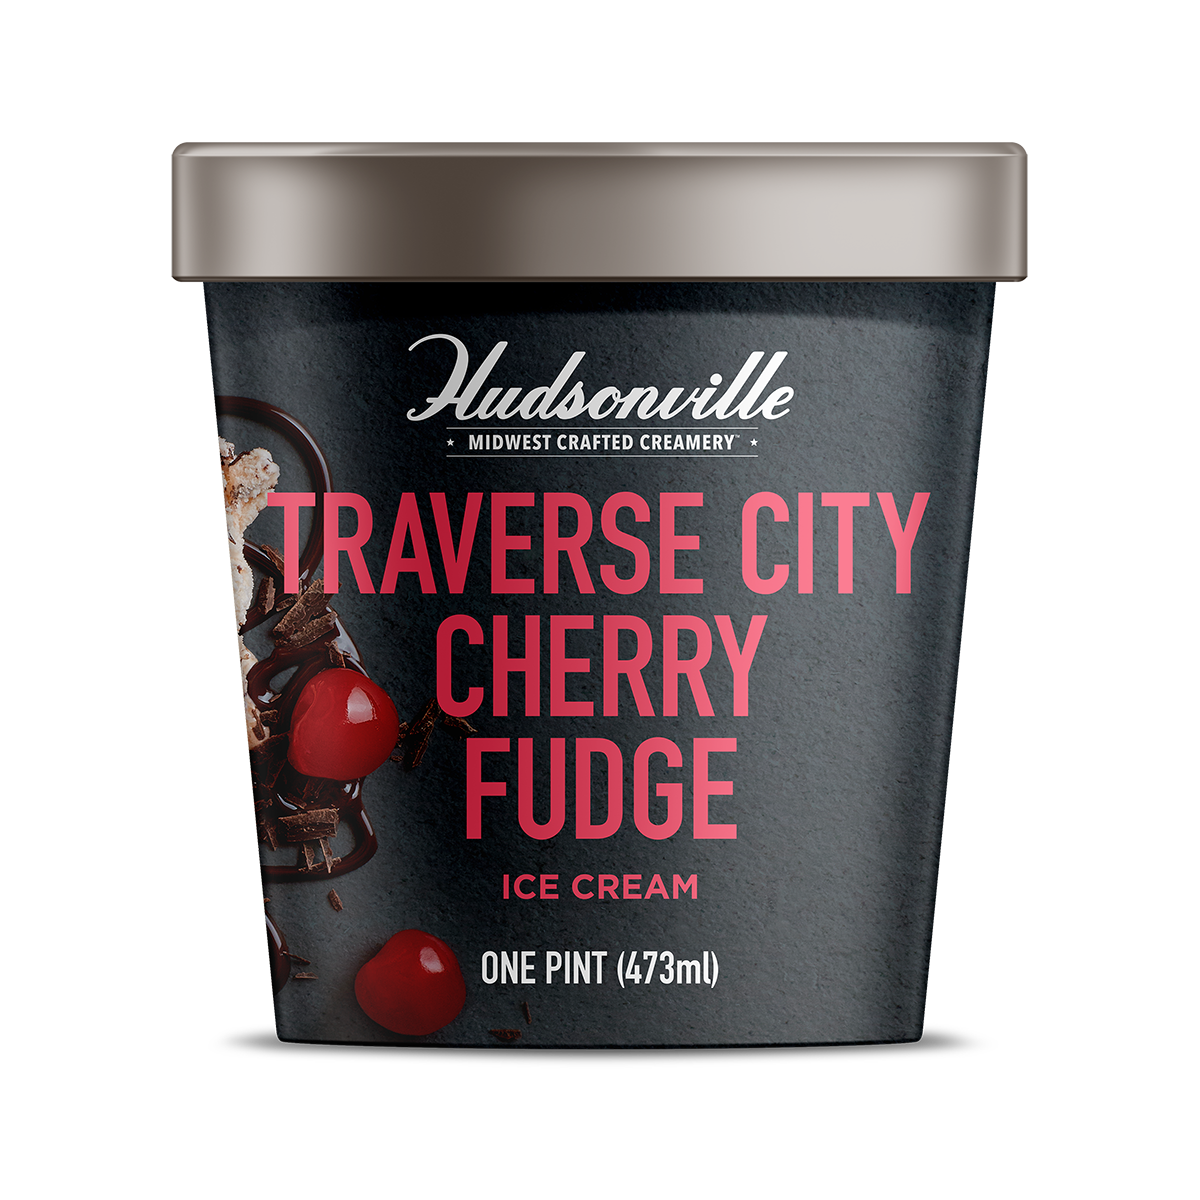 TRAVERSE CITY CHERRY FUDGE Pint